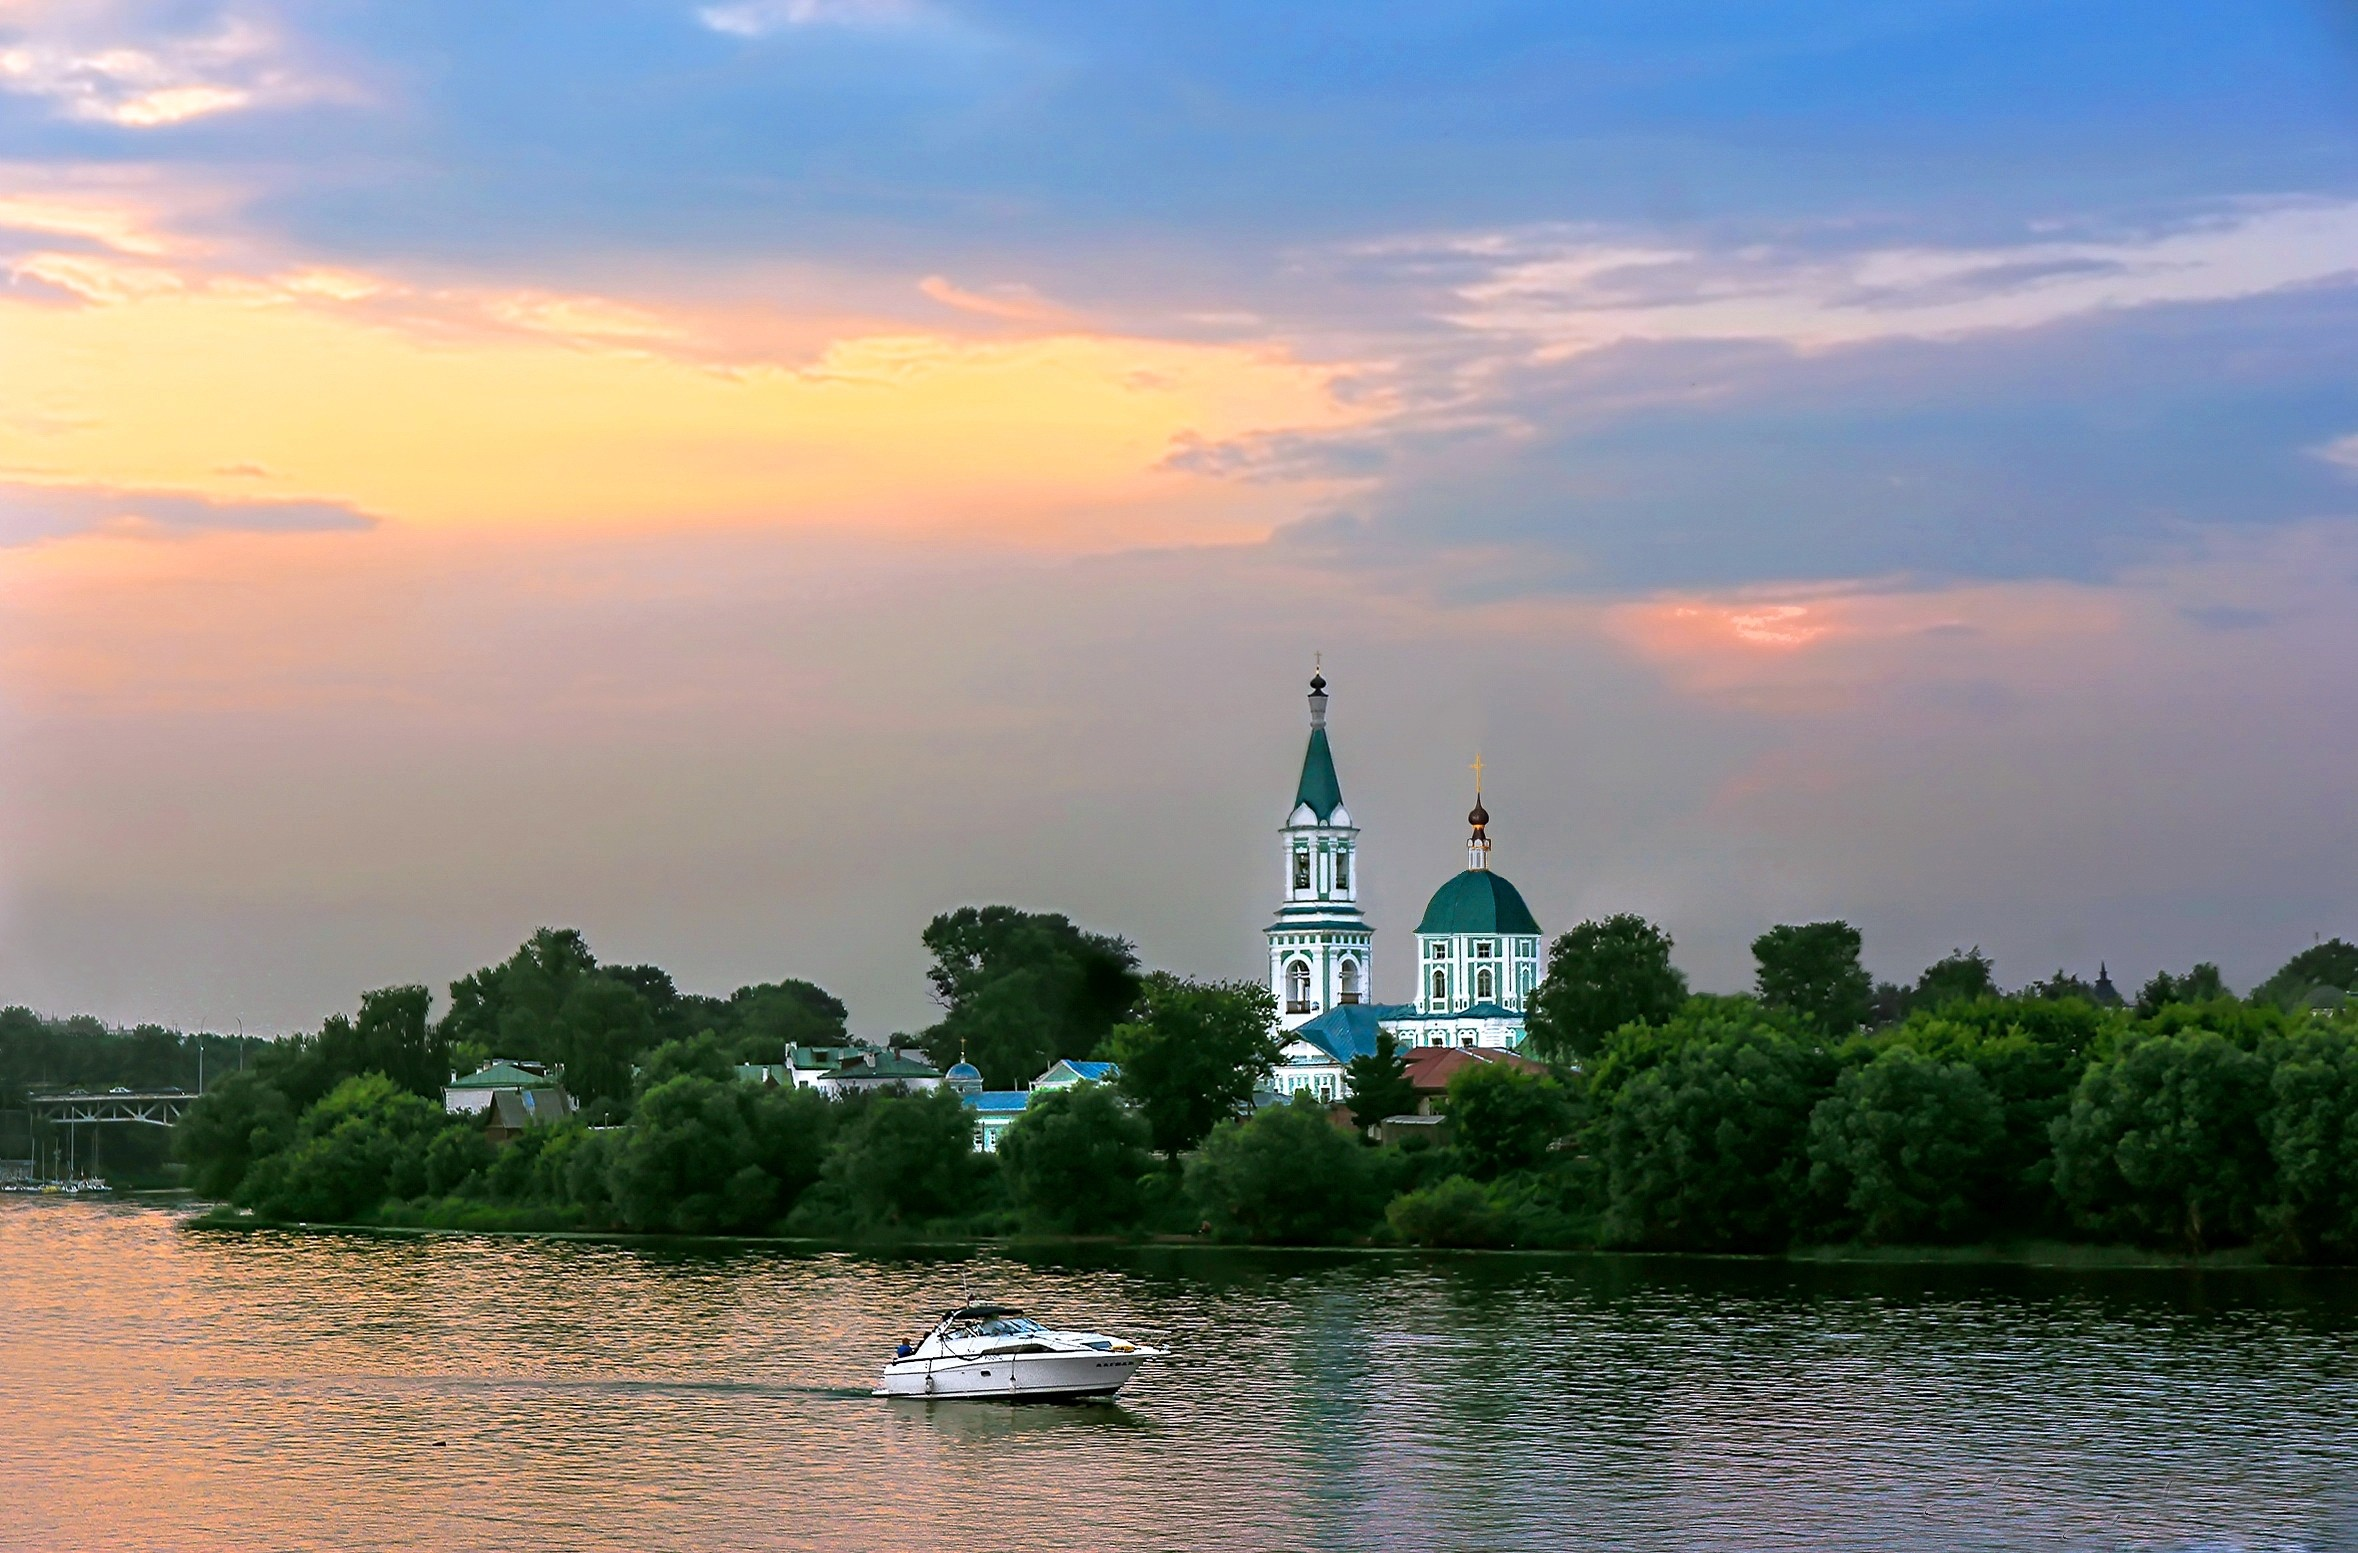 Evening On The Volga River Wallpaper AllWallpaperin PC En - The volga river